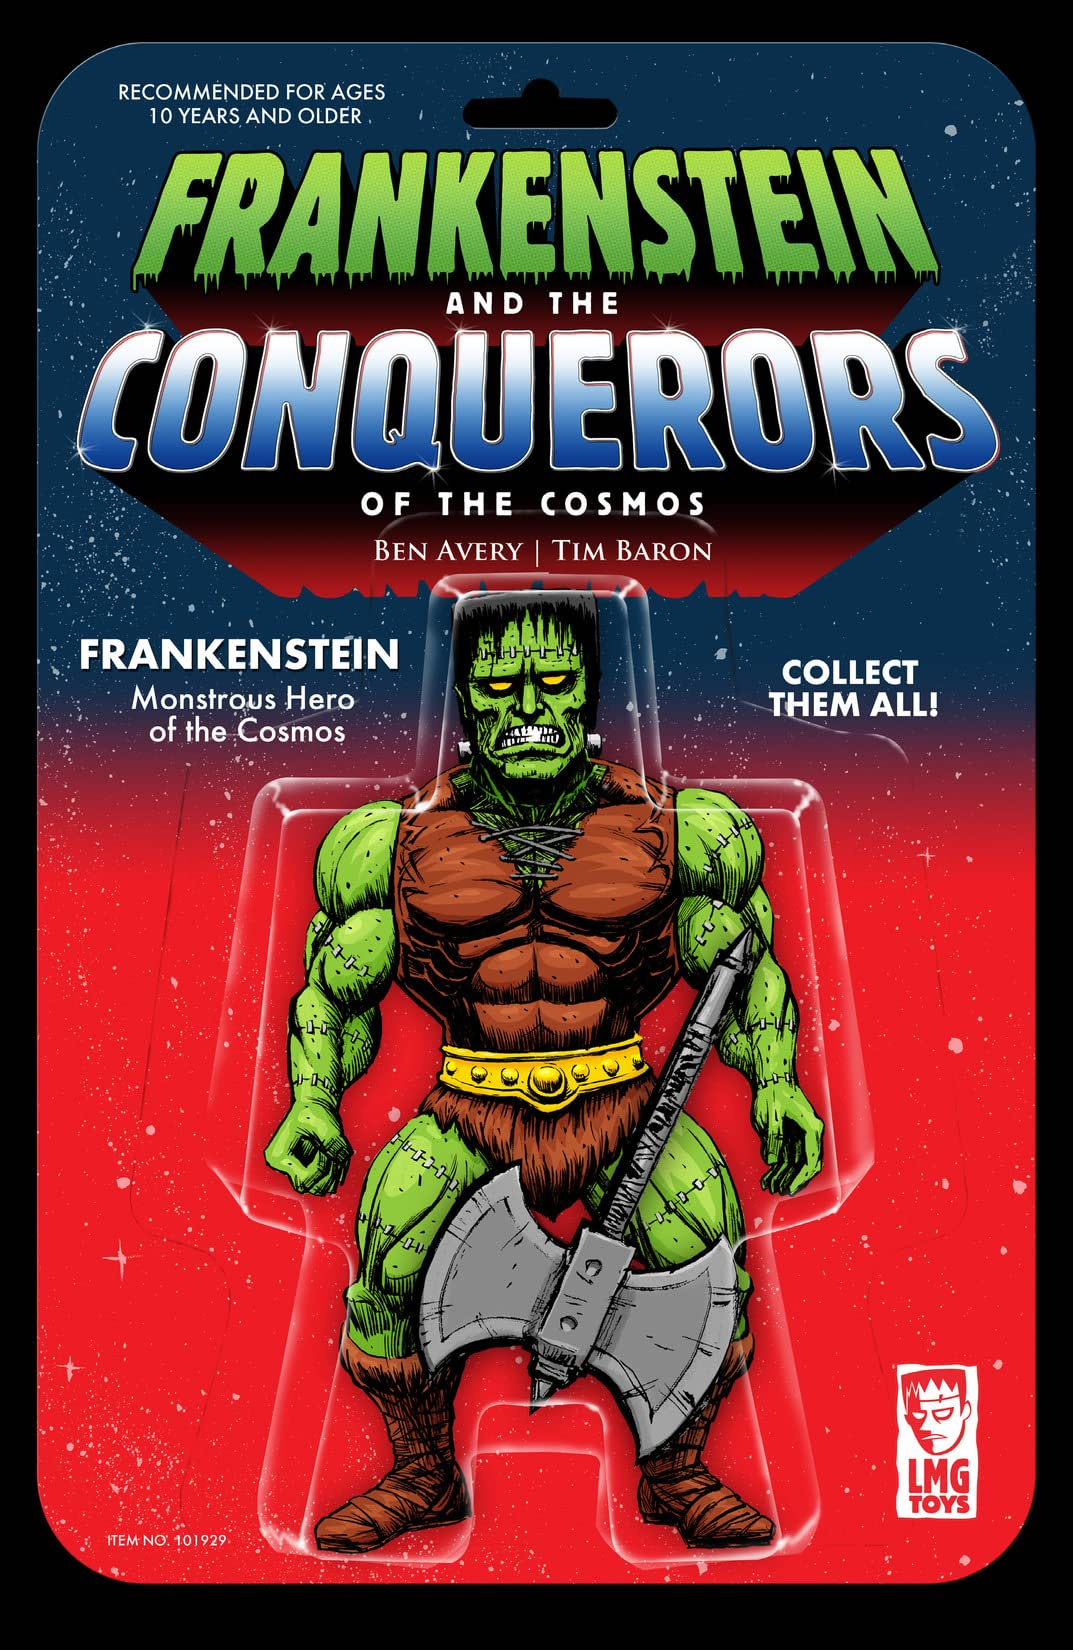 Frankenstein and the Conquerors of the Cosmos